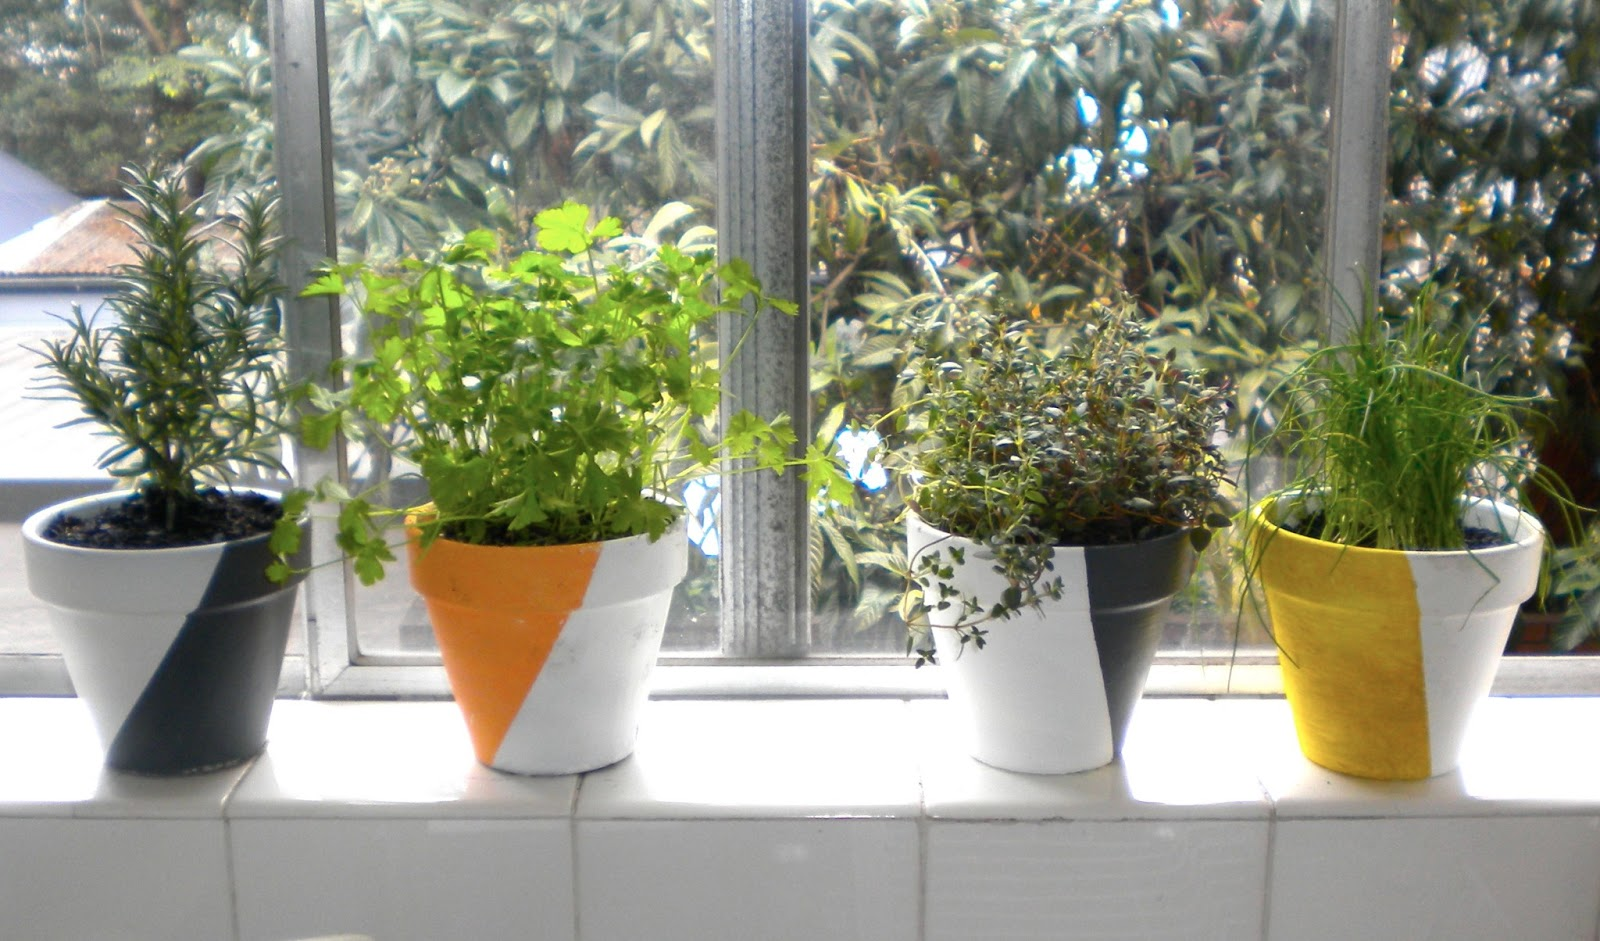 emerald and may diy how to grow herbs indoors. Black Bedroom Furniture Sets. Home Design Ideas